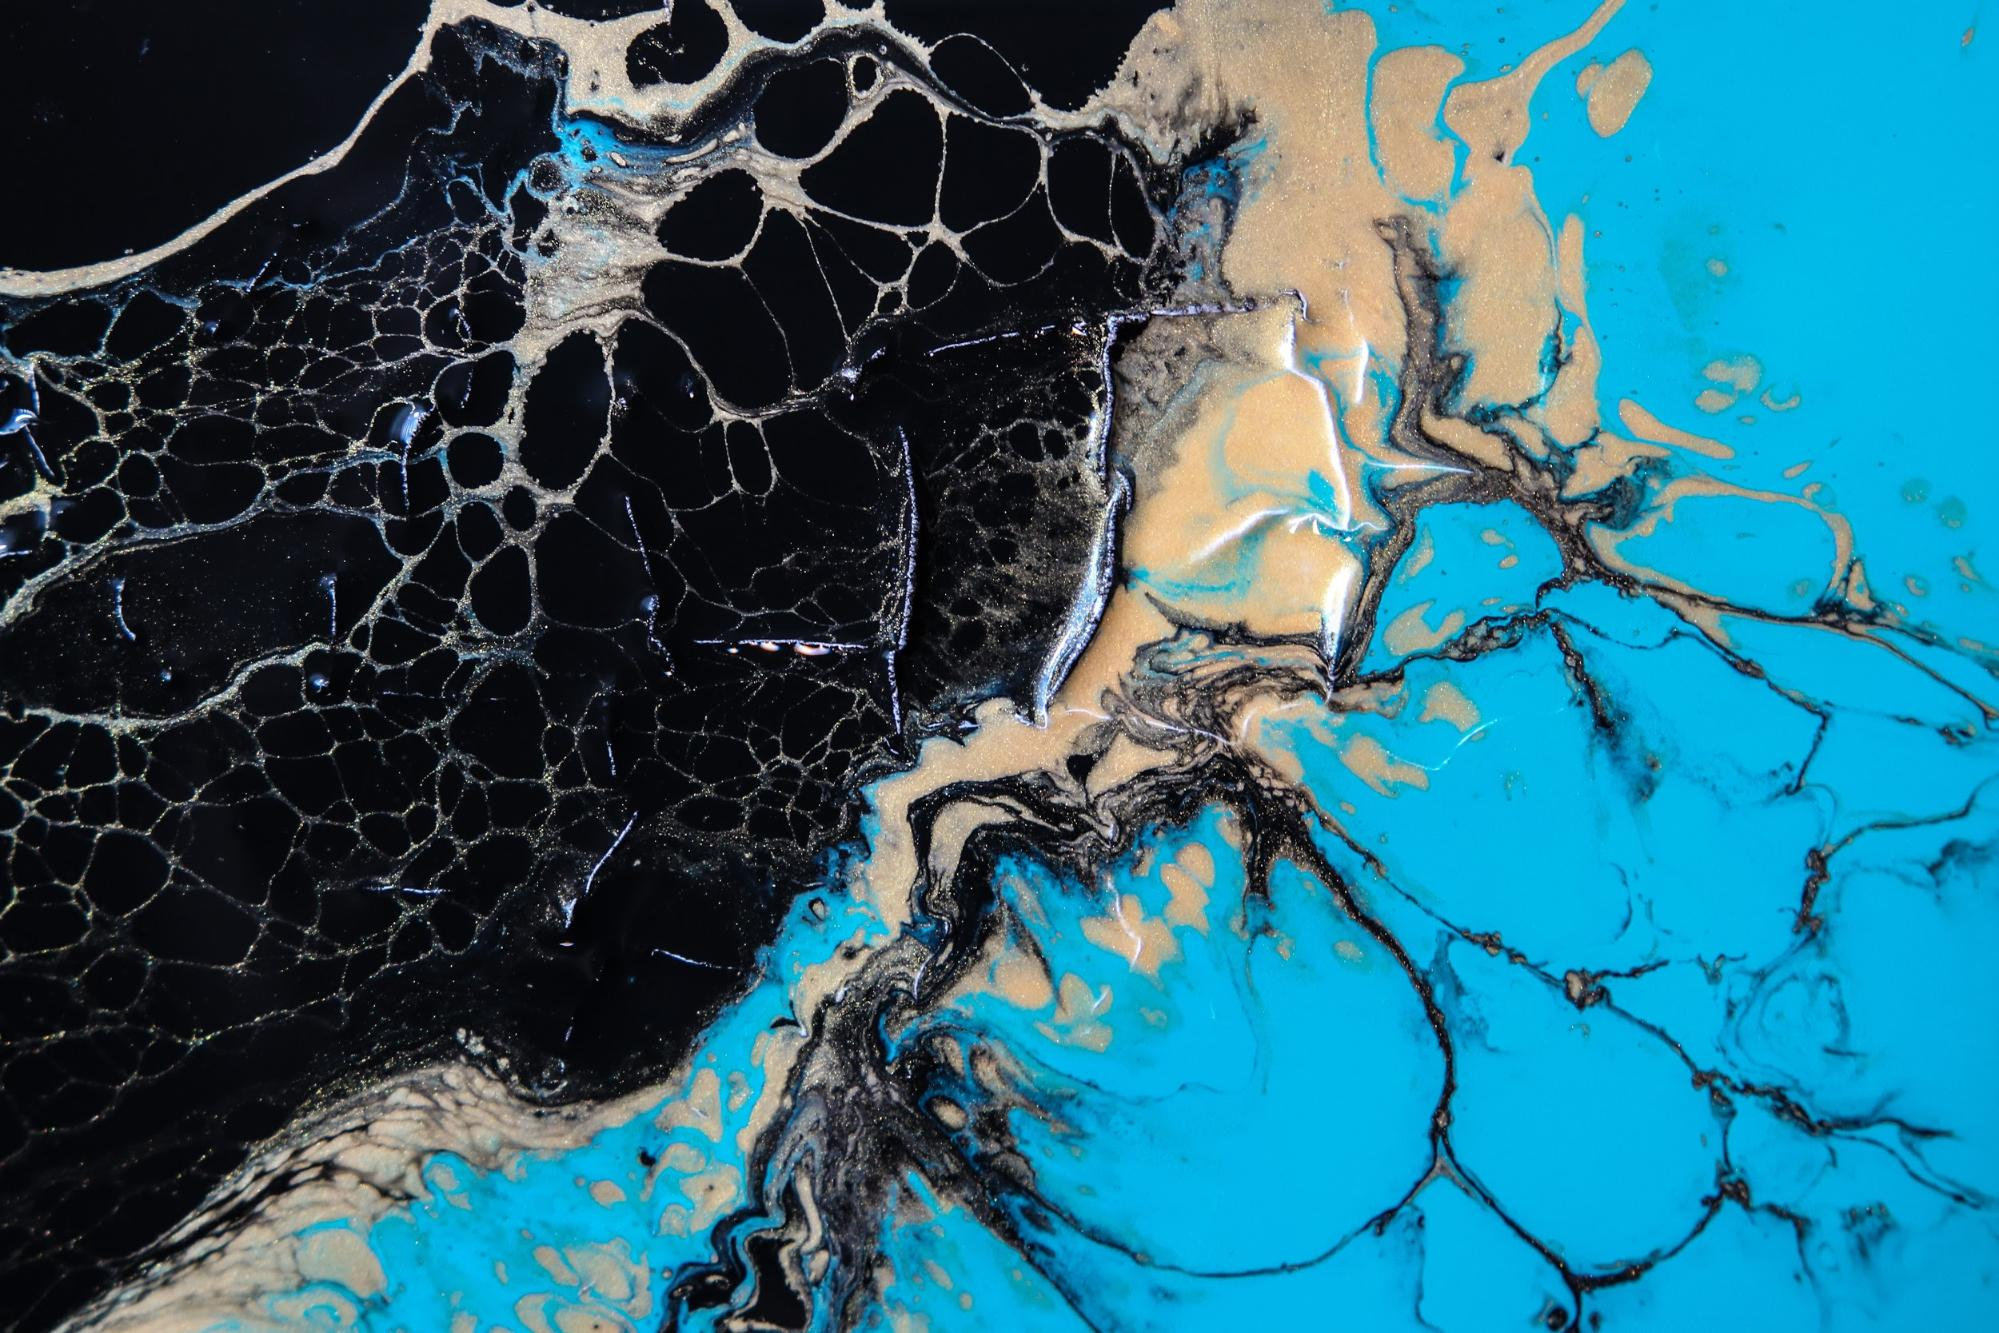 Fluid Art Tutorial: How to Do Acrylic Pouring - image12